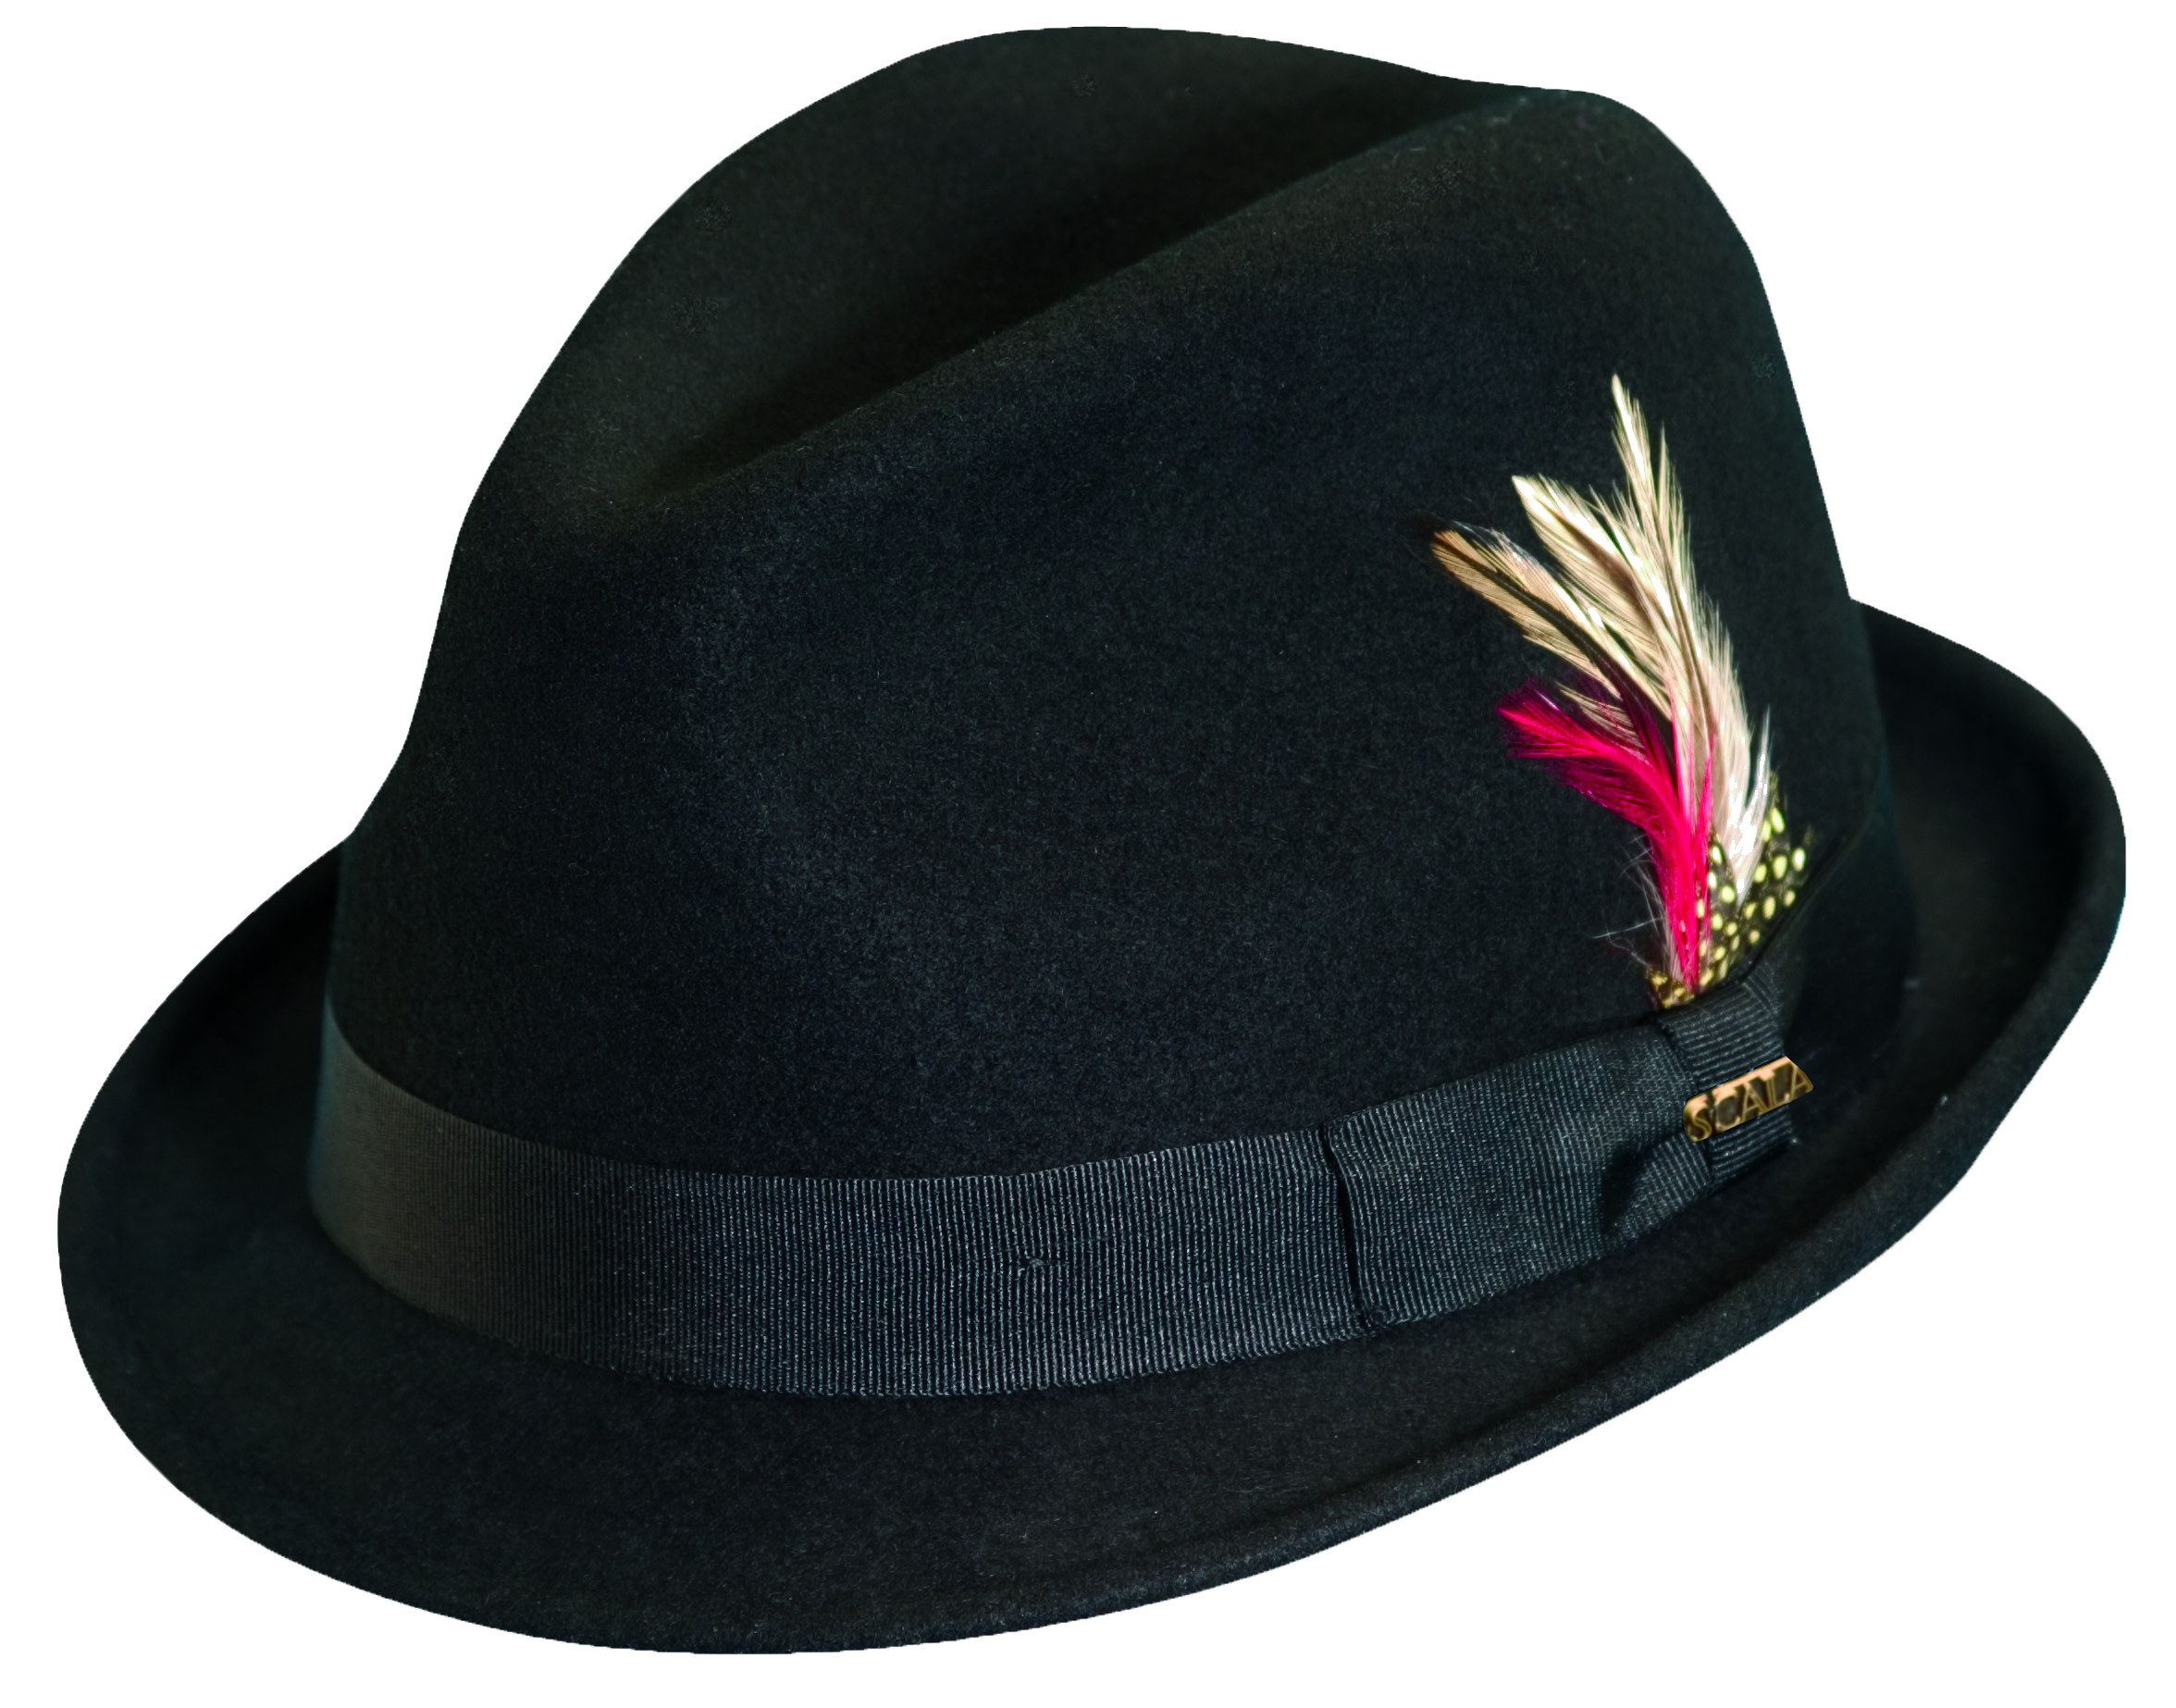 Scala Stingy Brim Fedora Black